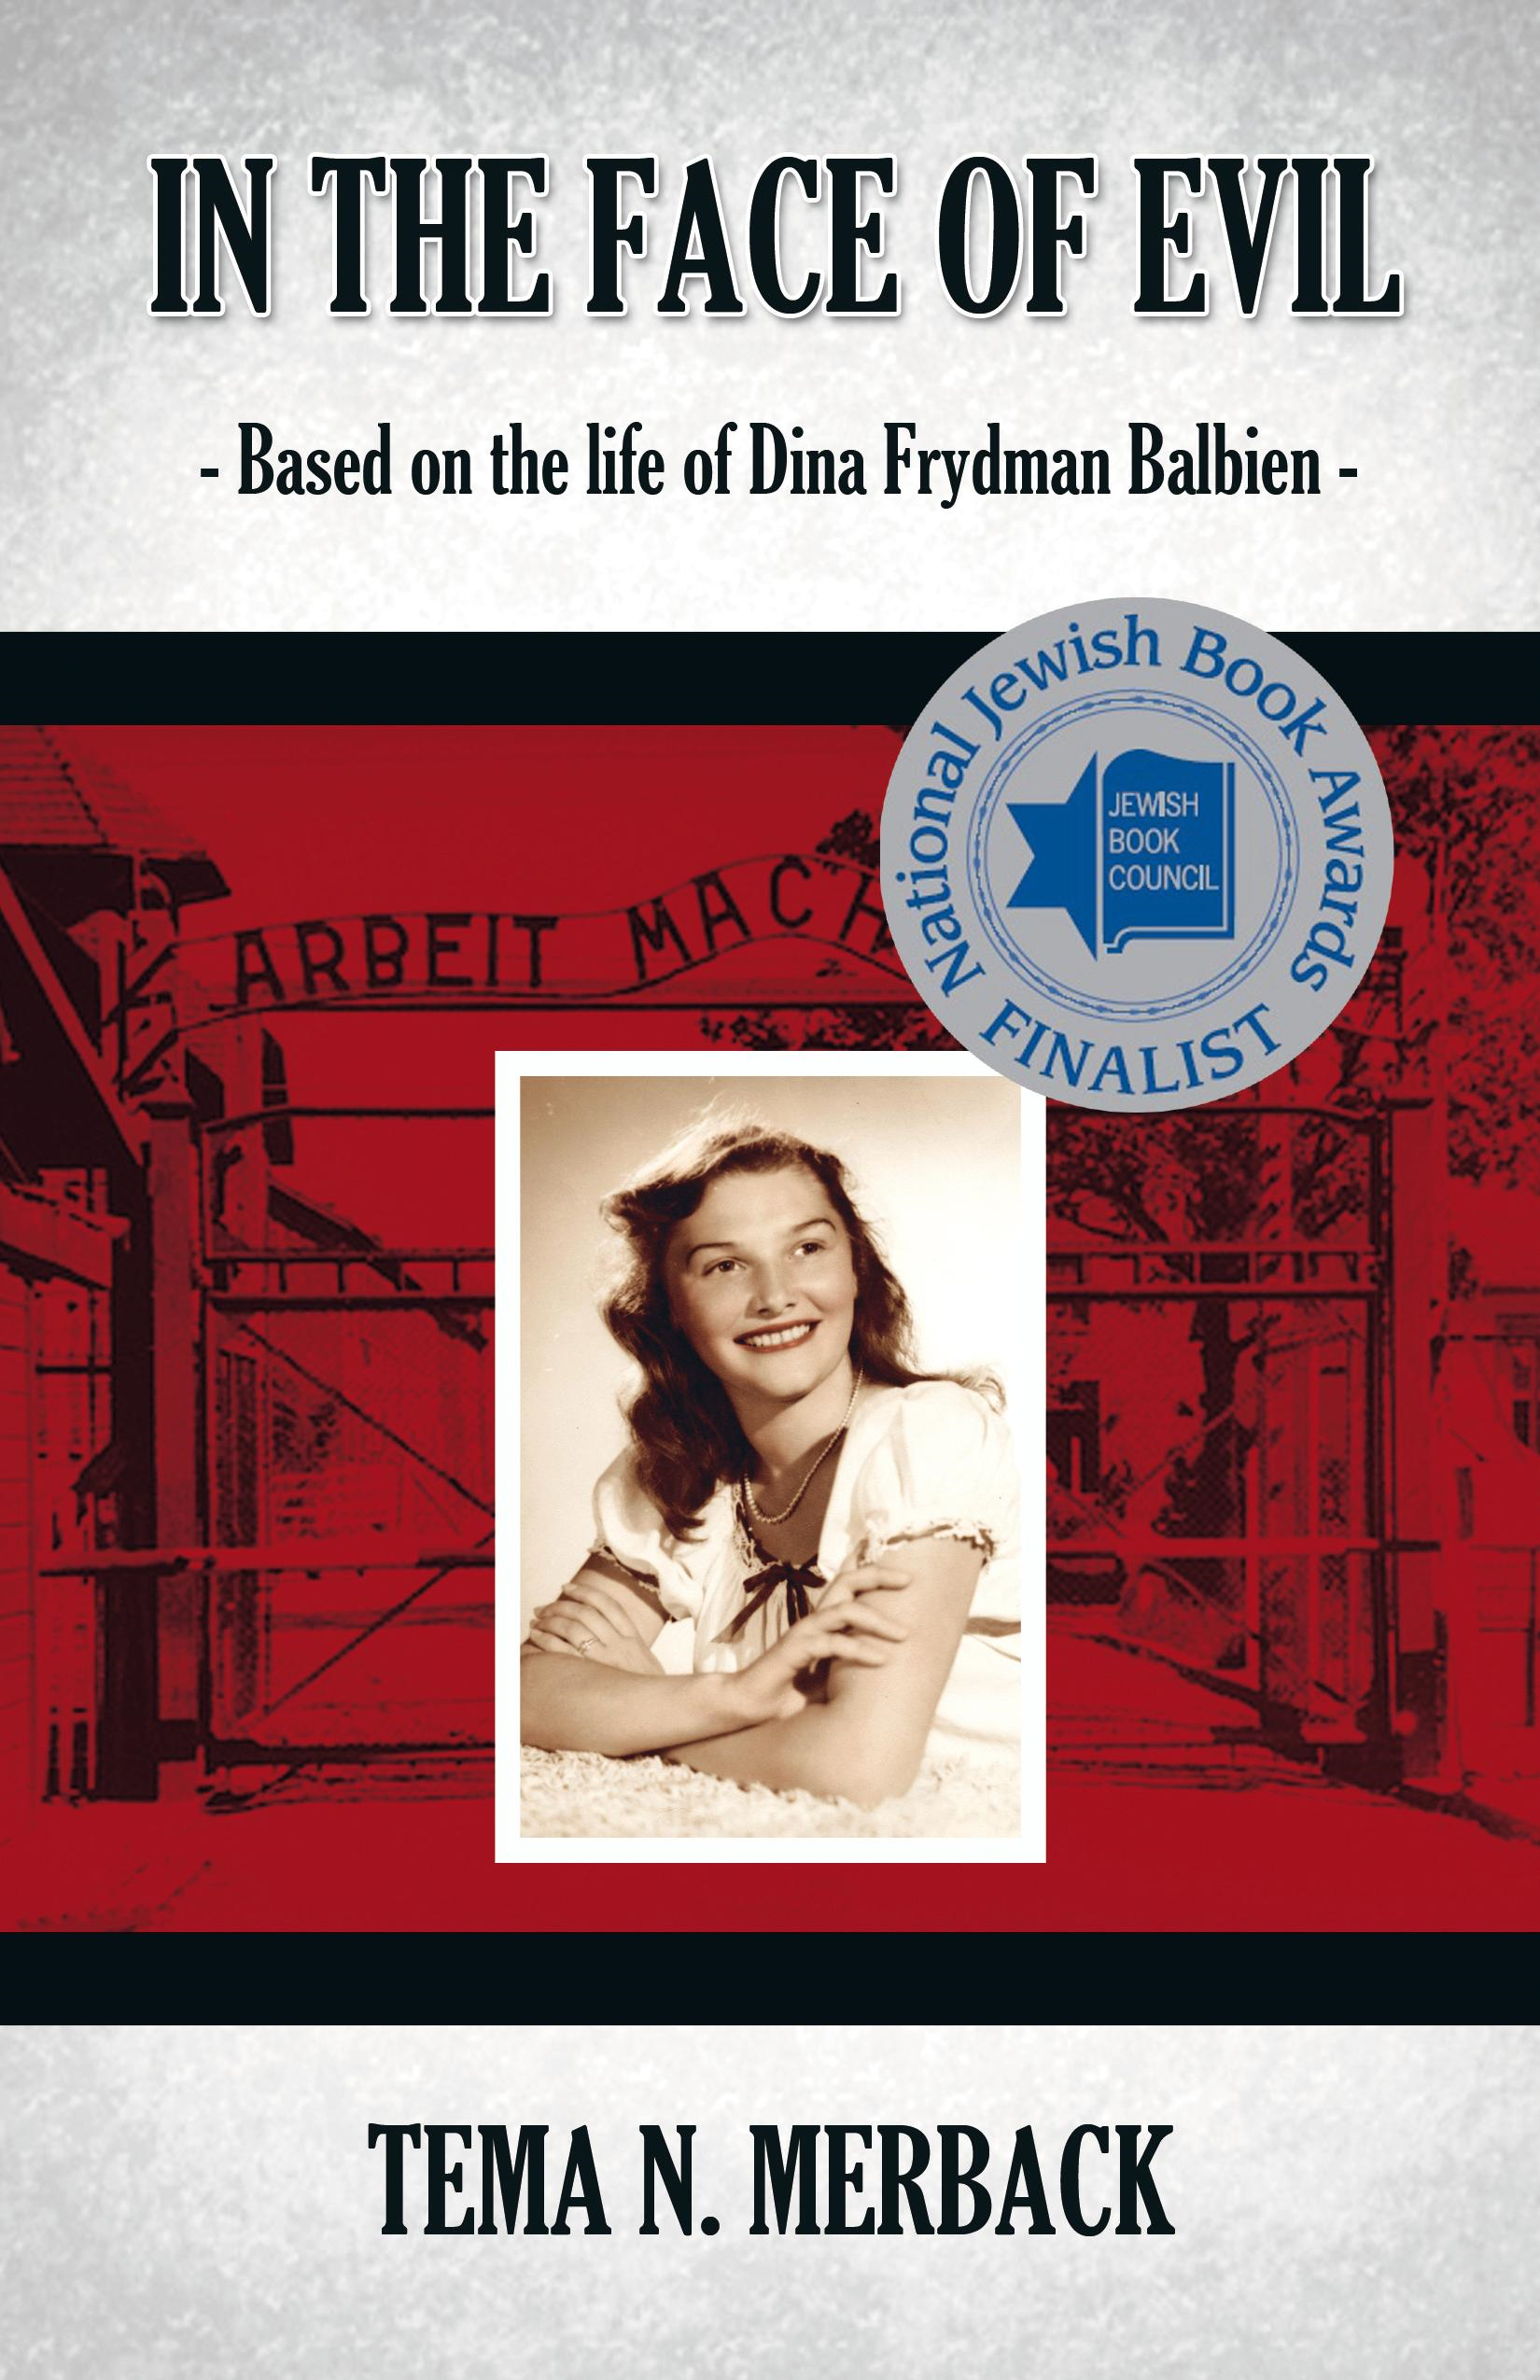 In the Face of Evil: Based on the life of Dina Frydman Balbien By: Merback, Tema N.